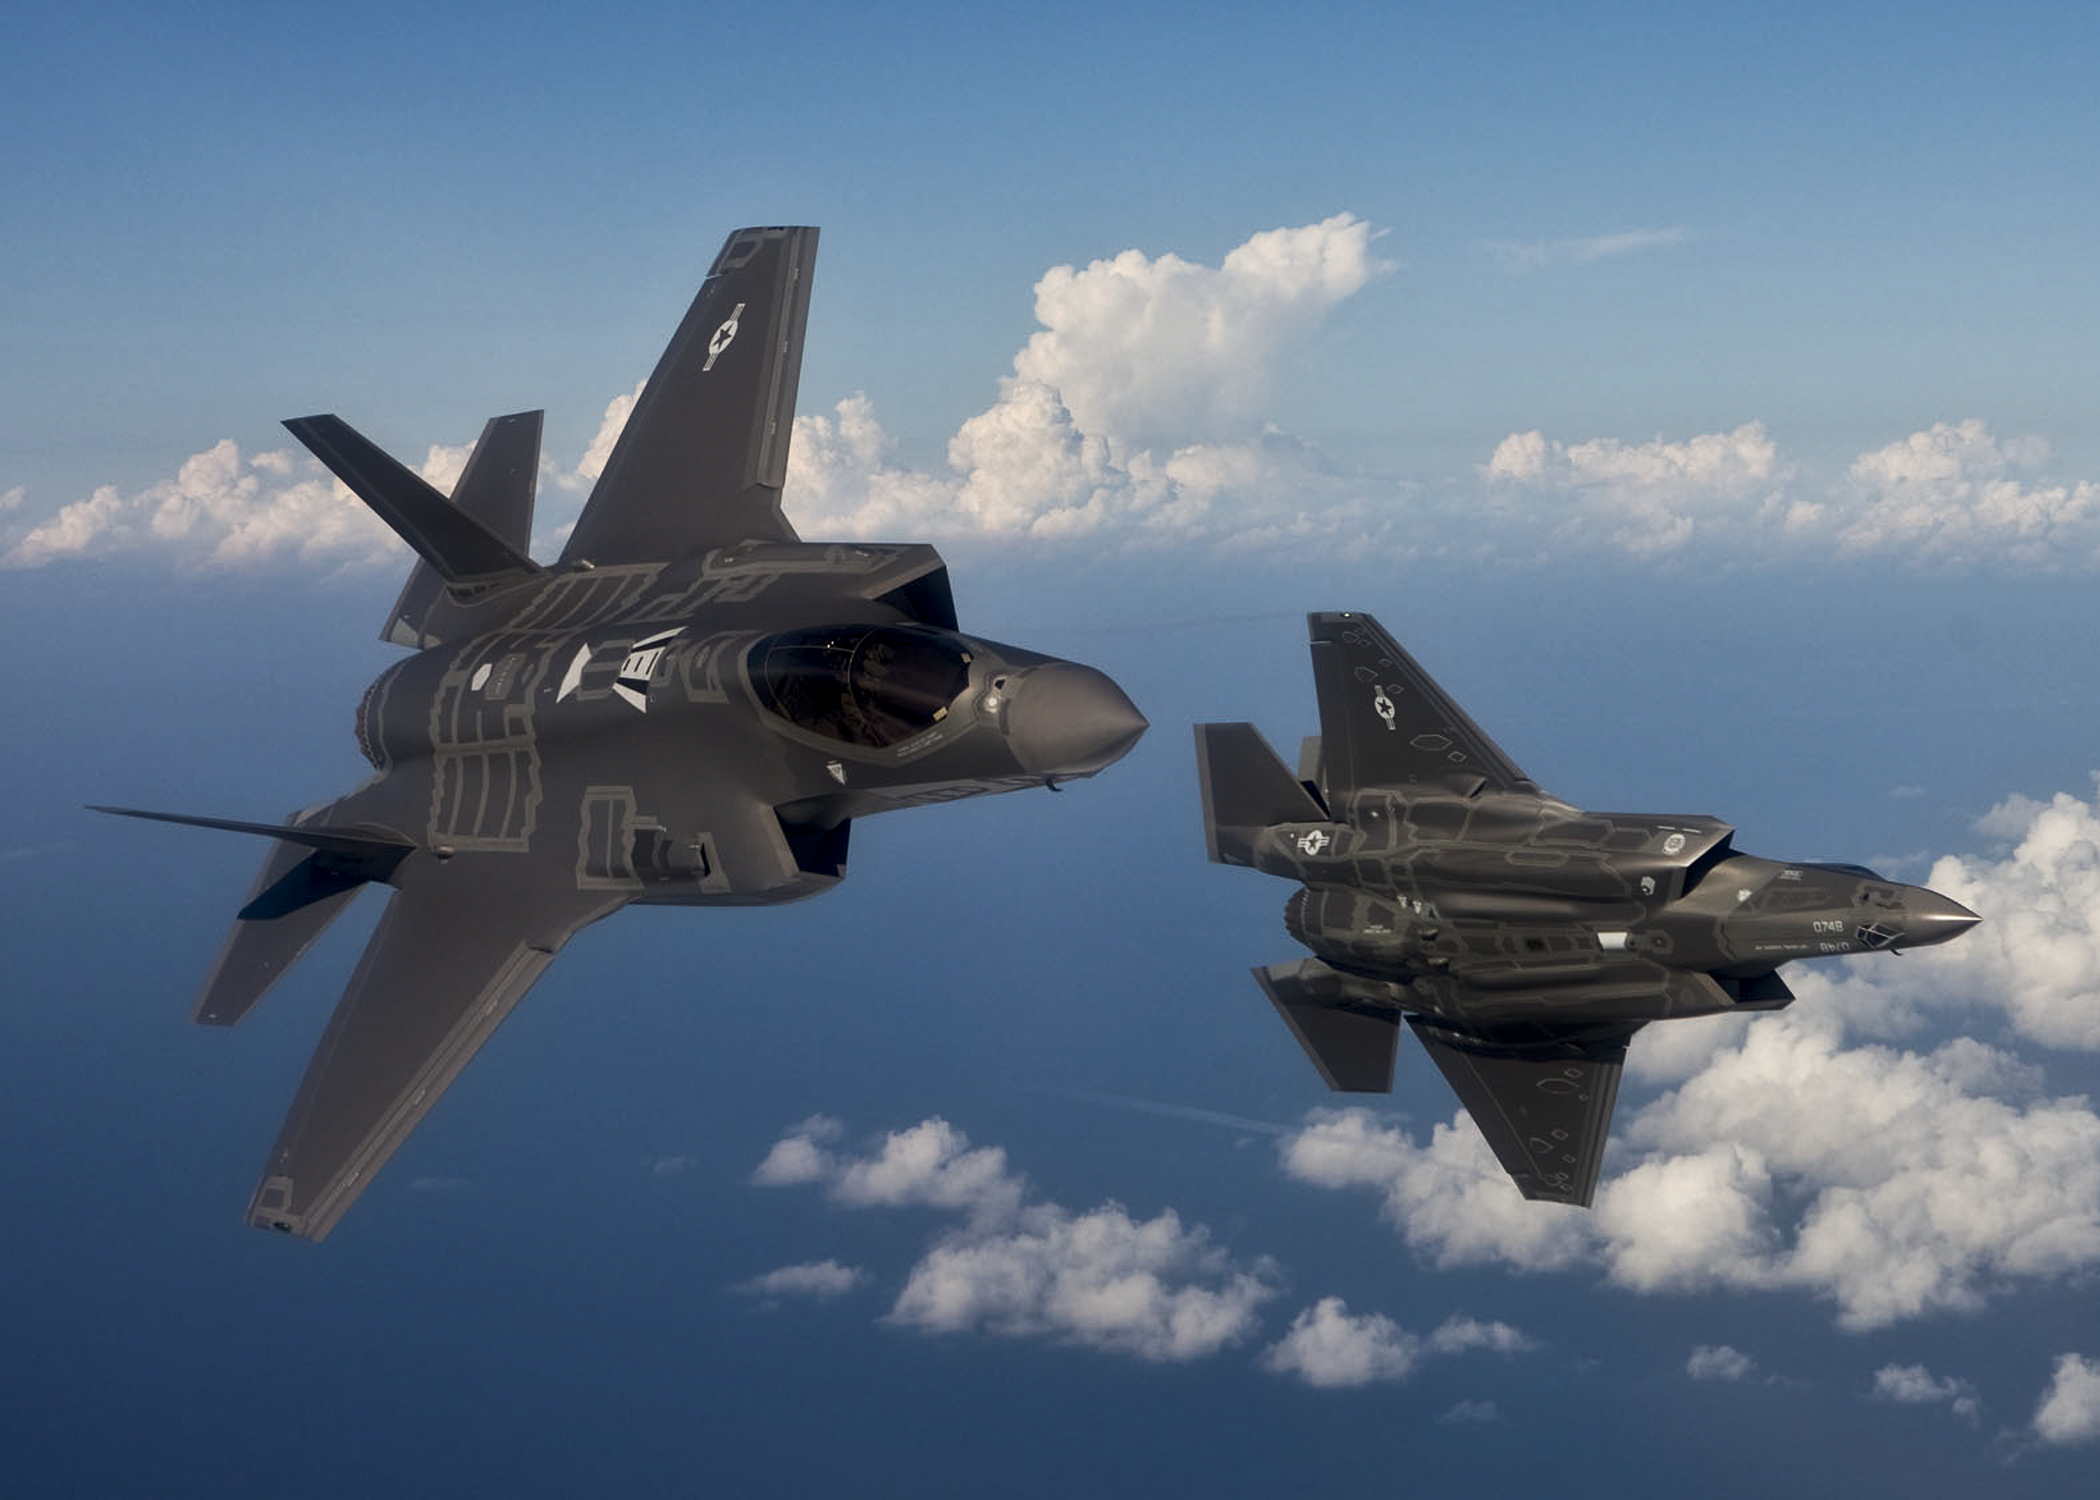 F-35s at Luke Air Force Base grounded after pilots suffered oxygen deprivation